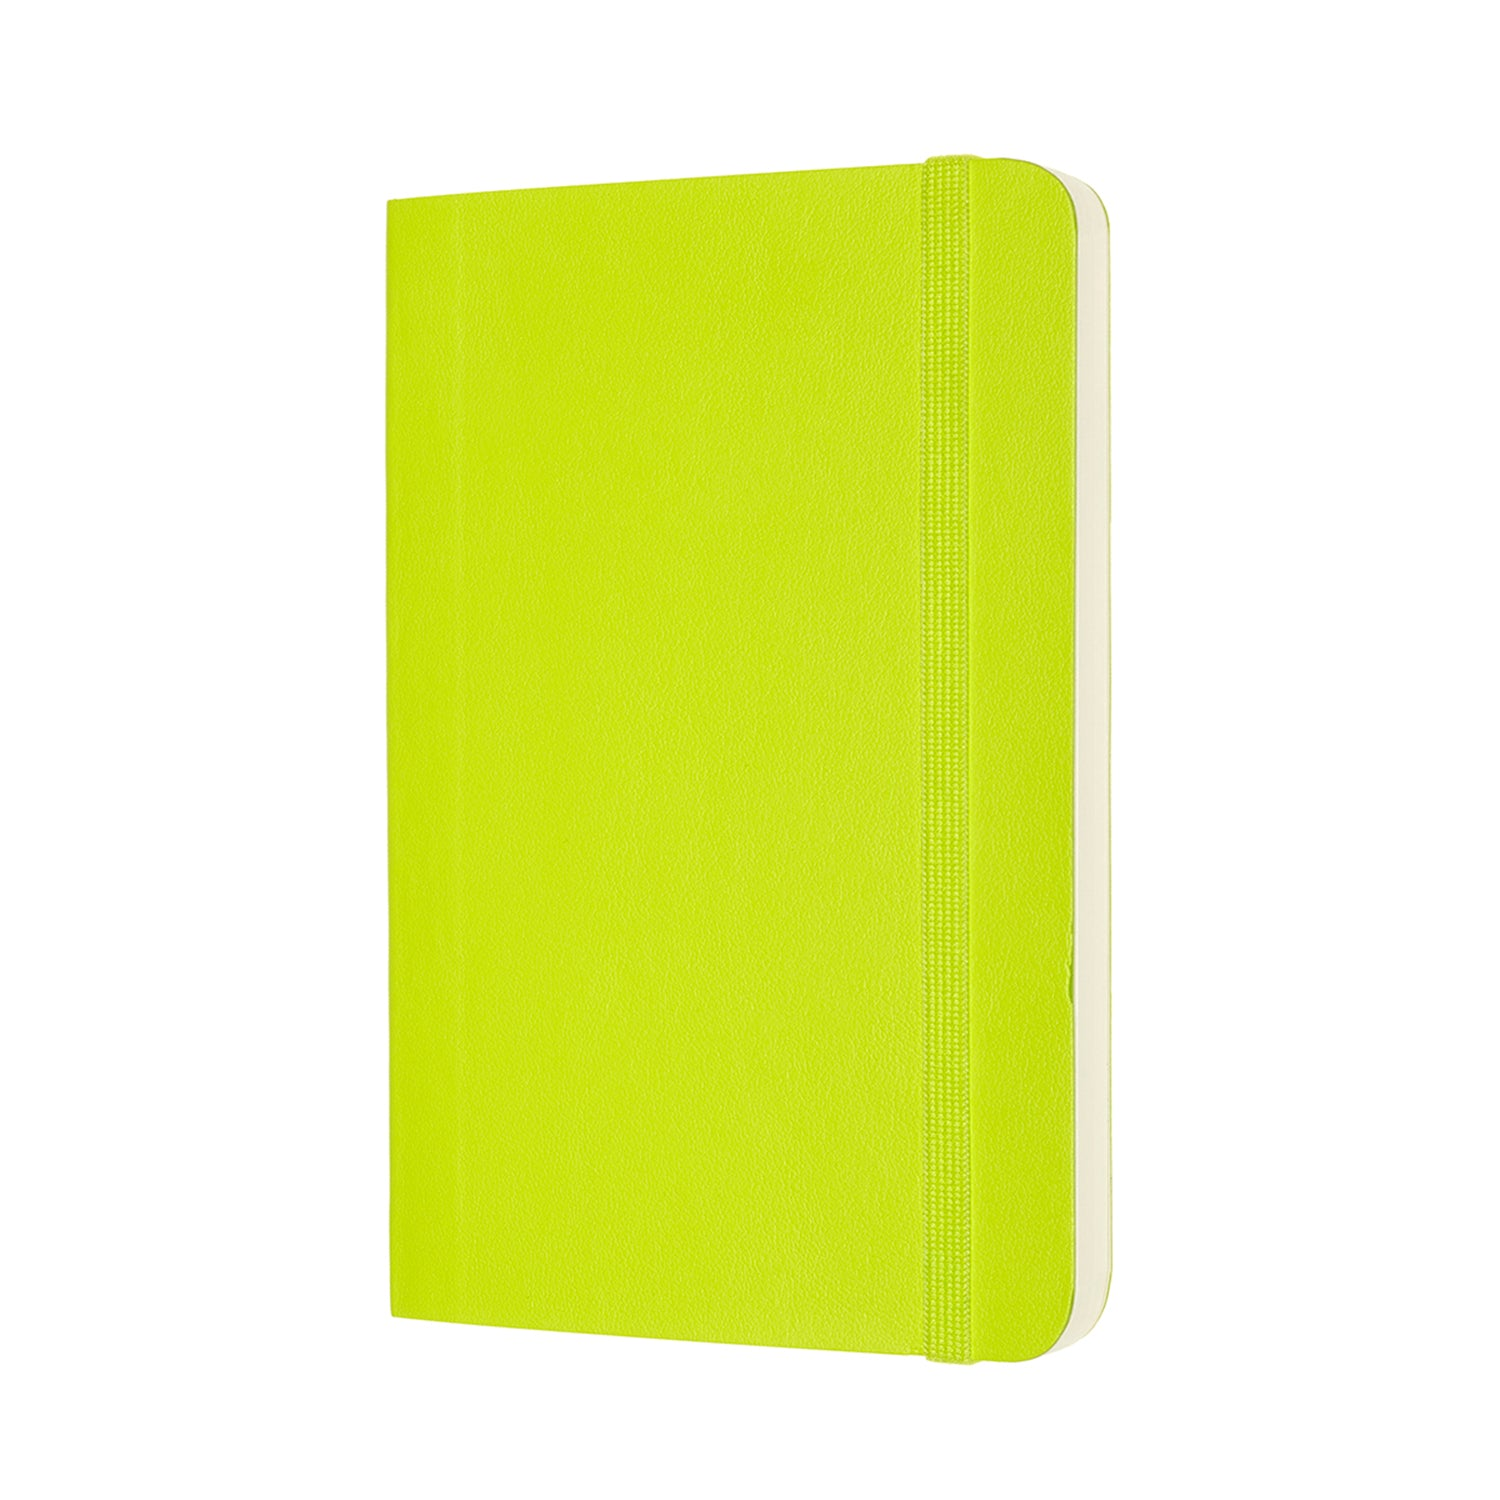 Pocket Soft Cover Notebook